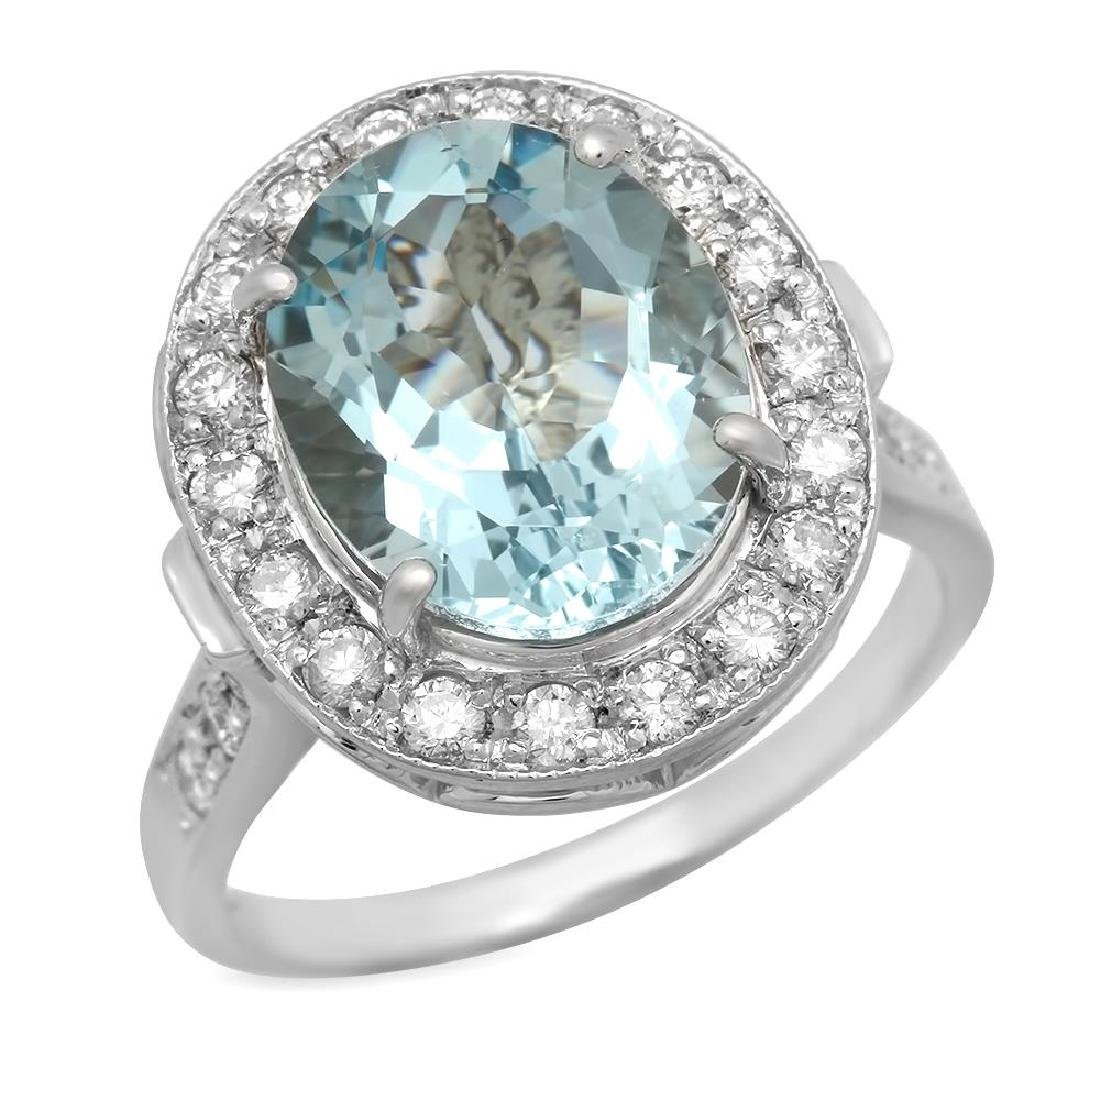 14K Gold 3.99ct Aquamarine 0.55ct Diamond Ring